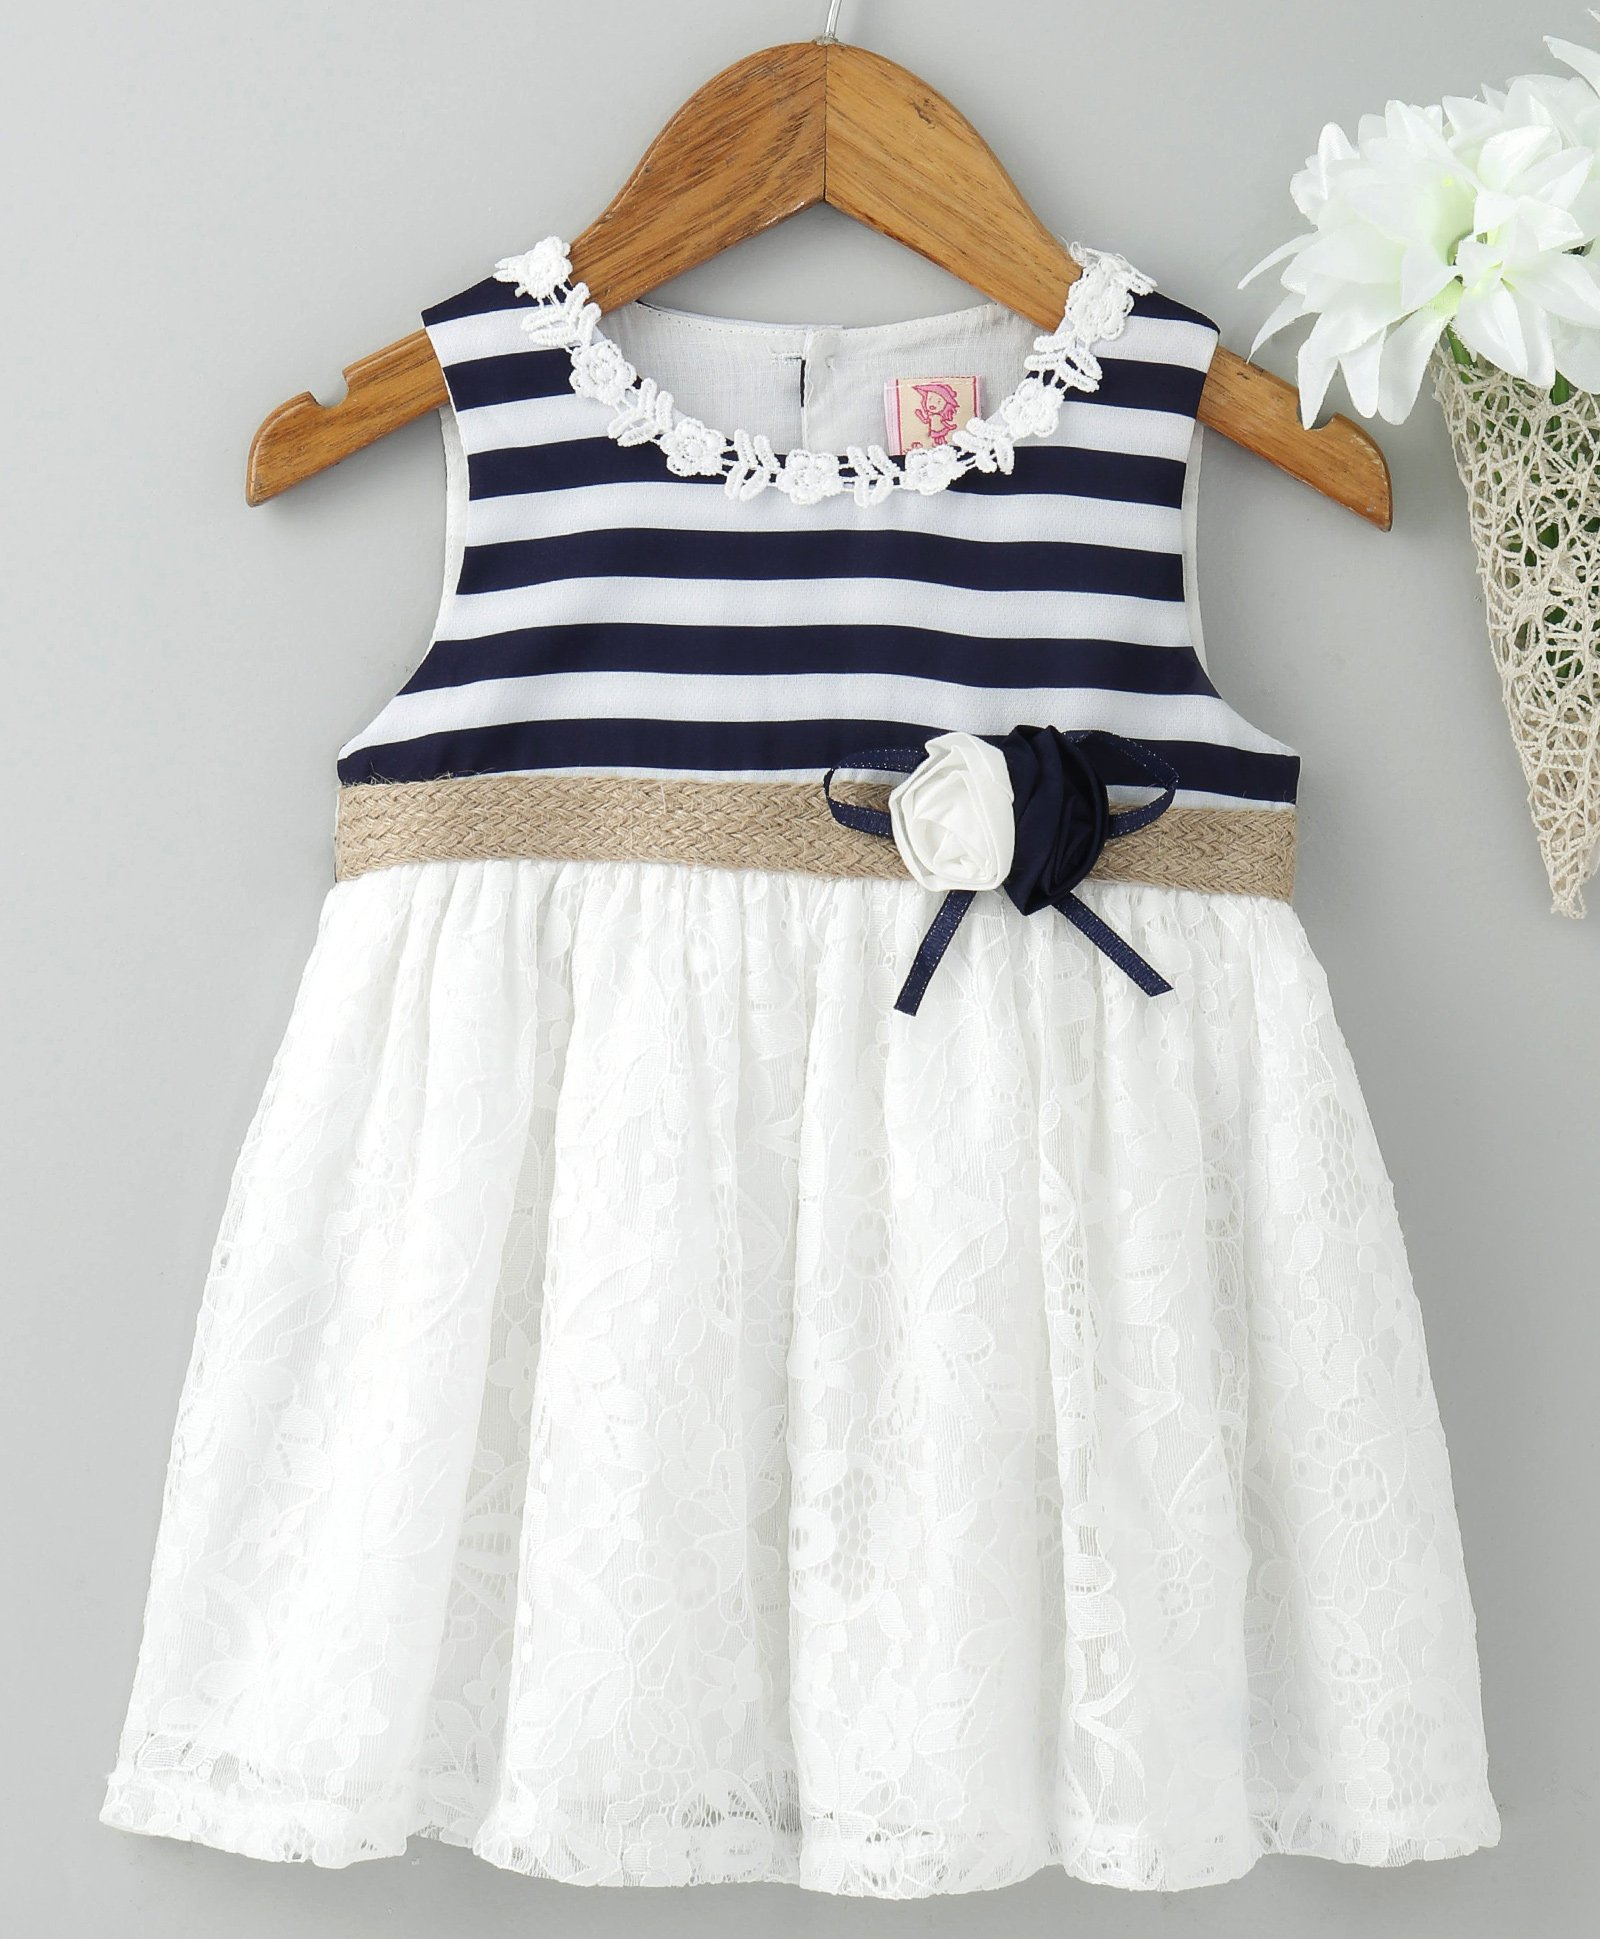 cbb0e207e047 Buy Sunny Baby Sleeveless Striped Frock Floral Applique Navy White ...